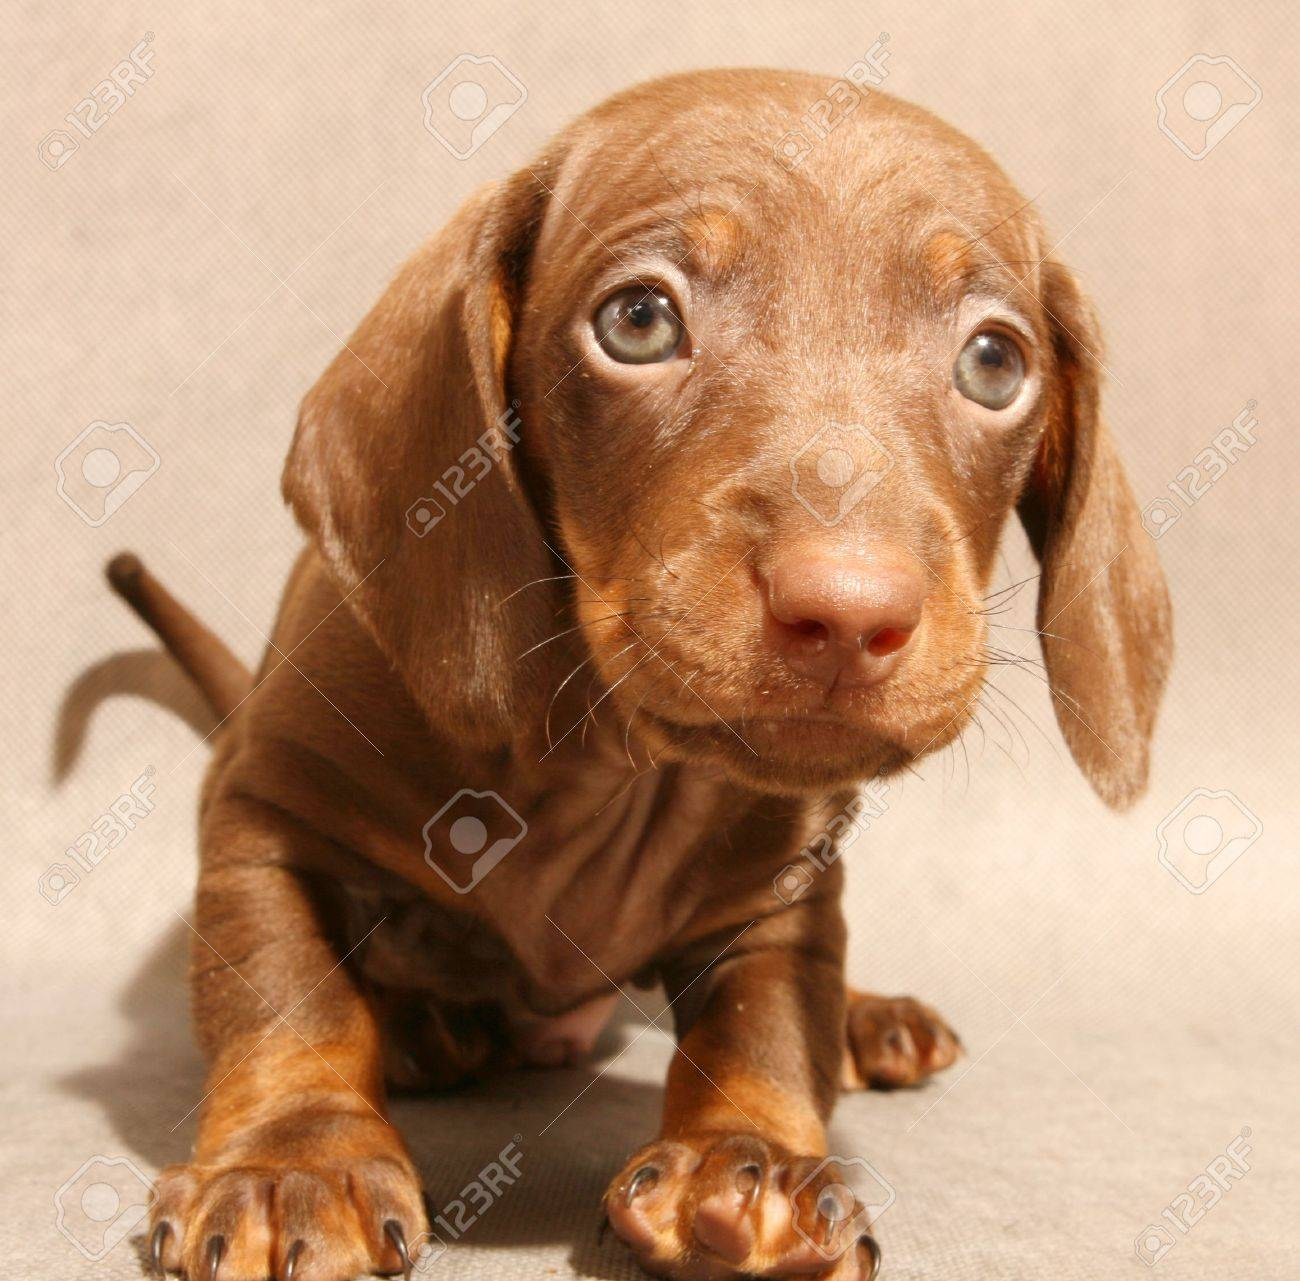 Cute Brown Dachshund Puppy On Grey Ground Stock Photo Picture And Royalty Free Image Image 3637822